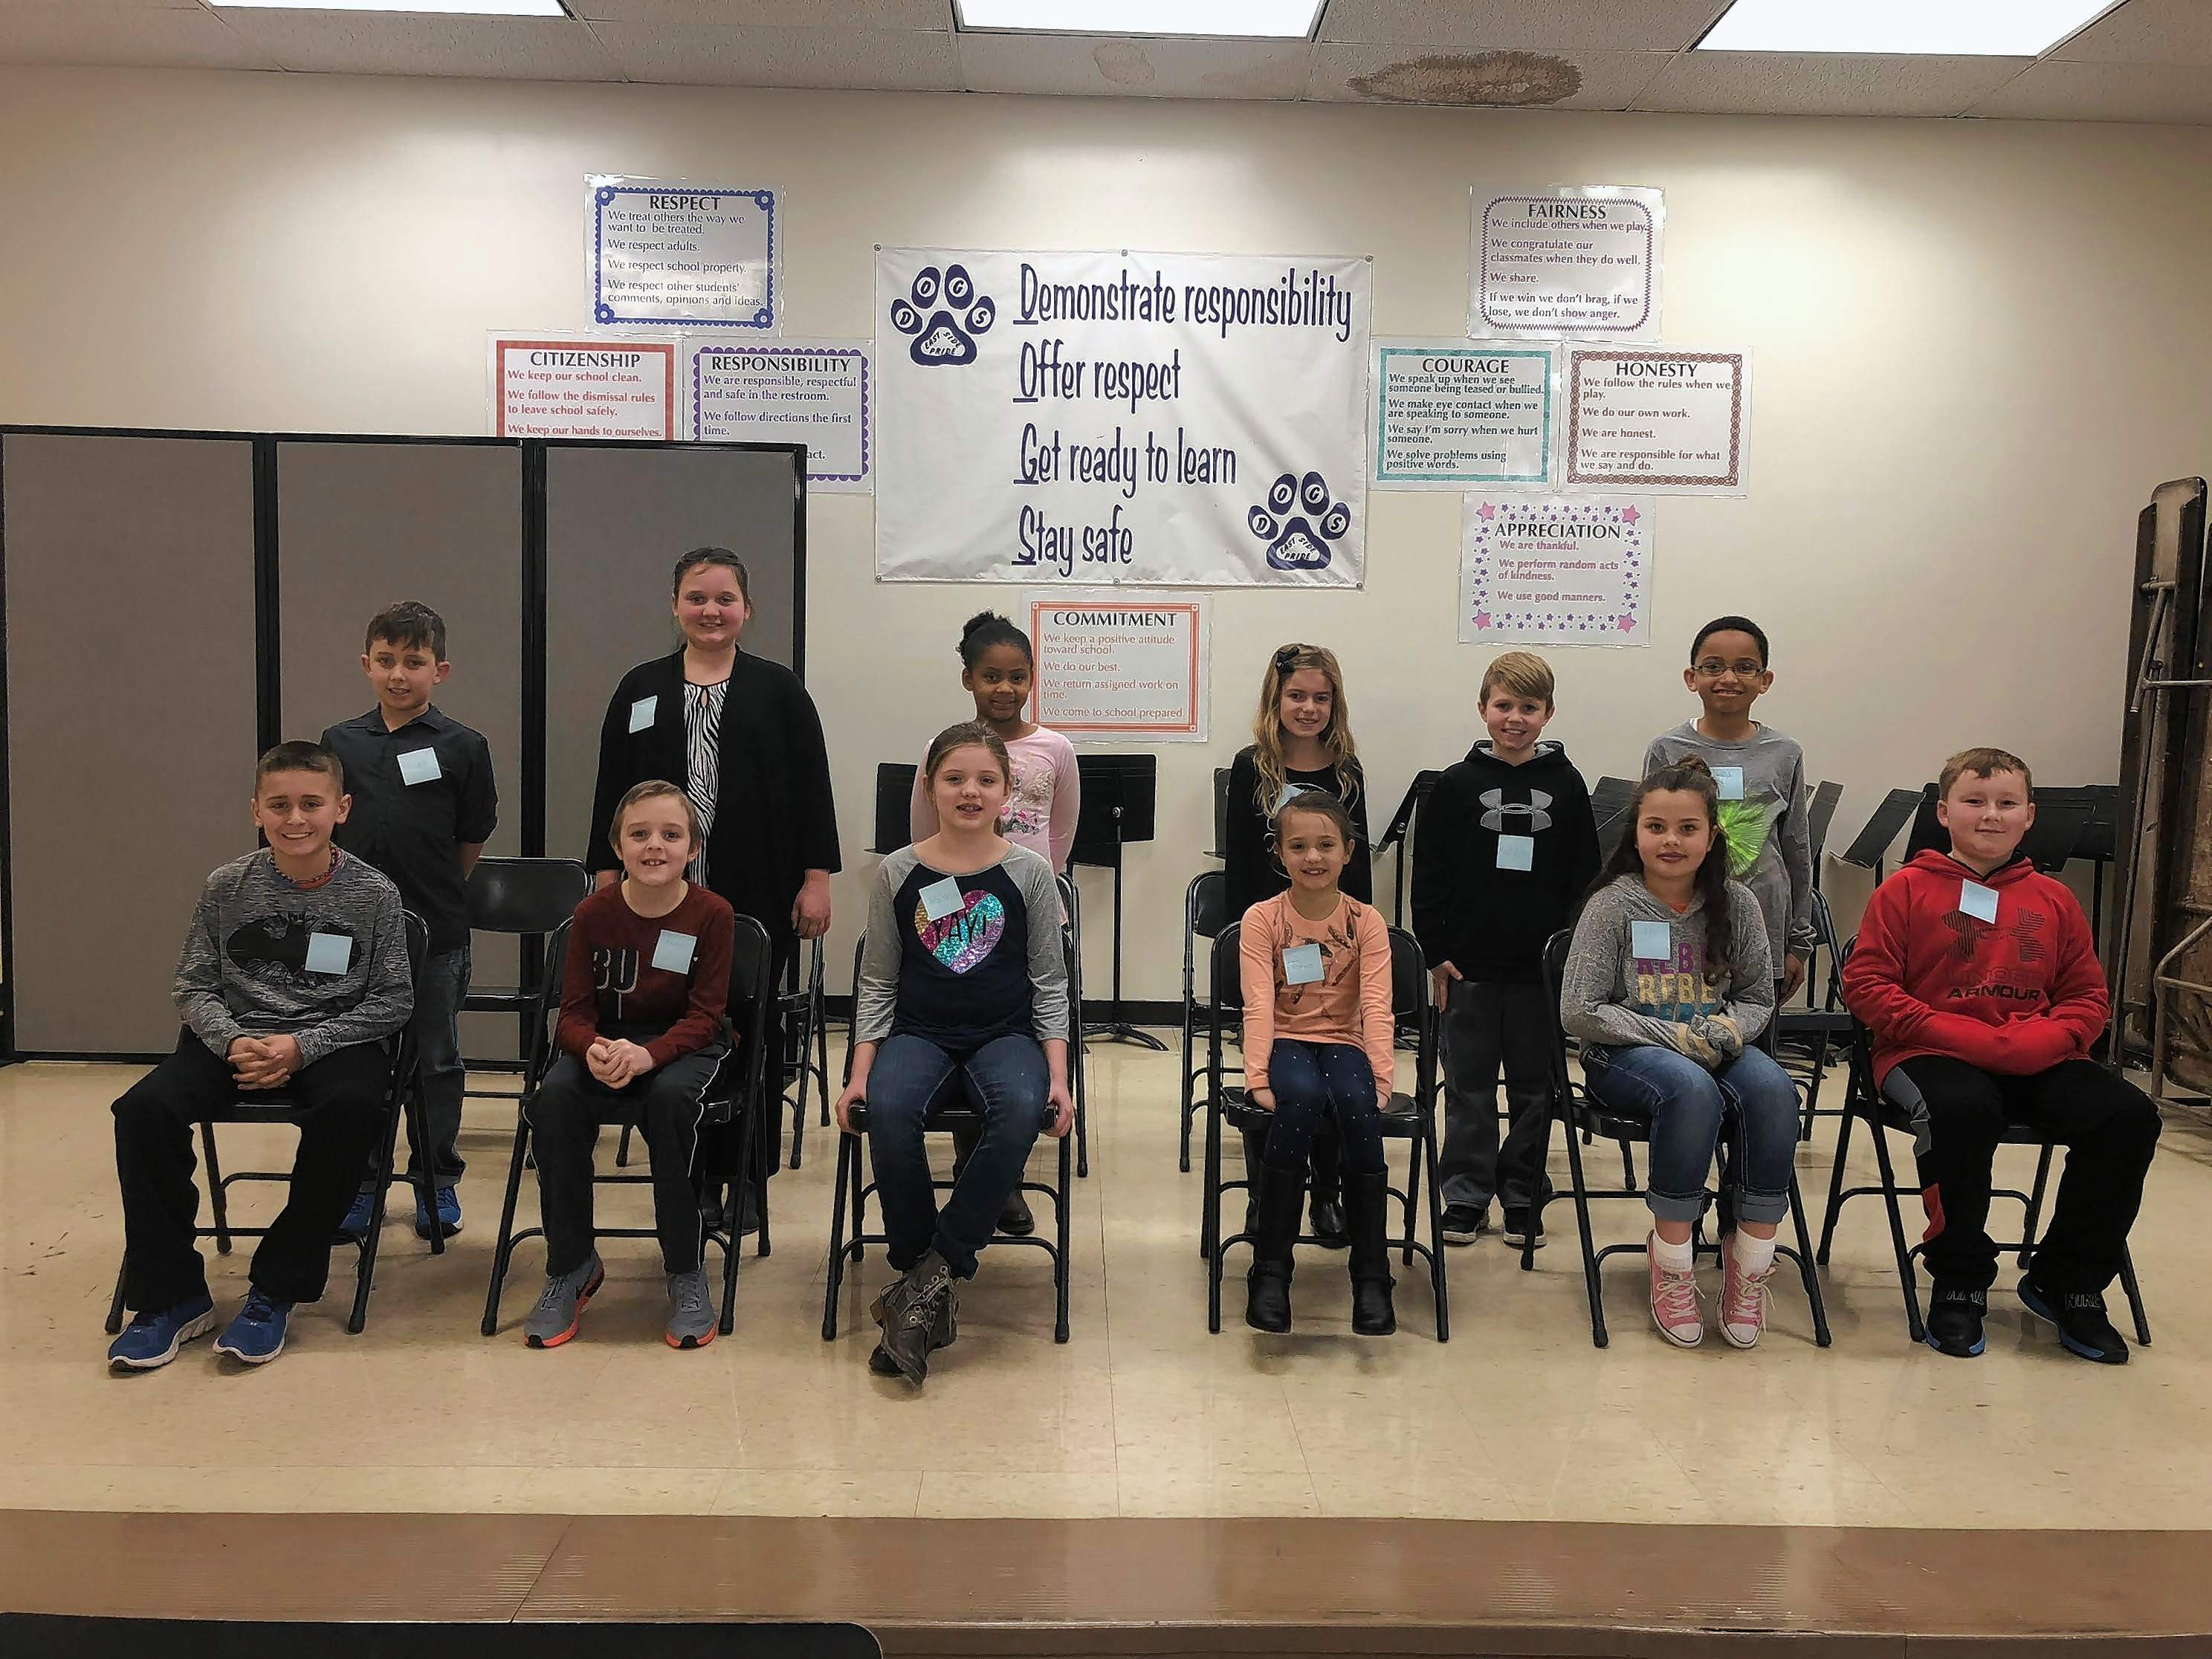 The third grade classroom winners. Front Row: Rylan Palmer, Aadyn Harrison, Marley Williams, Toree Wallace, Layla Scott, and Jarett Holbrook Back Row: Wiley Mott, Addison Stokich, Desinee Nelson, Lynlei Schiff, Maddux Smothers, and MaKiah Yarber